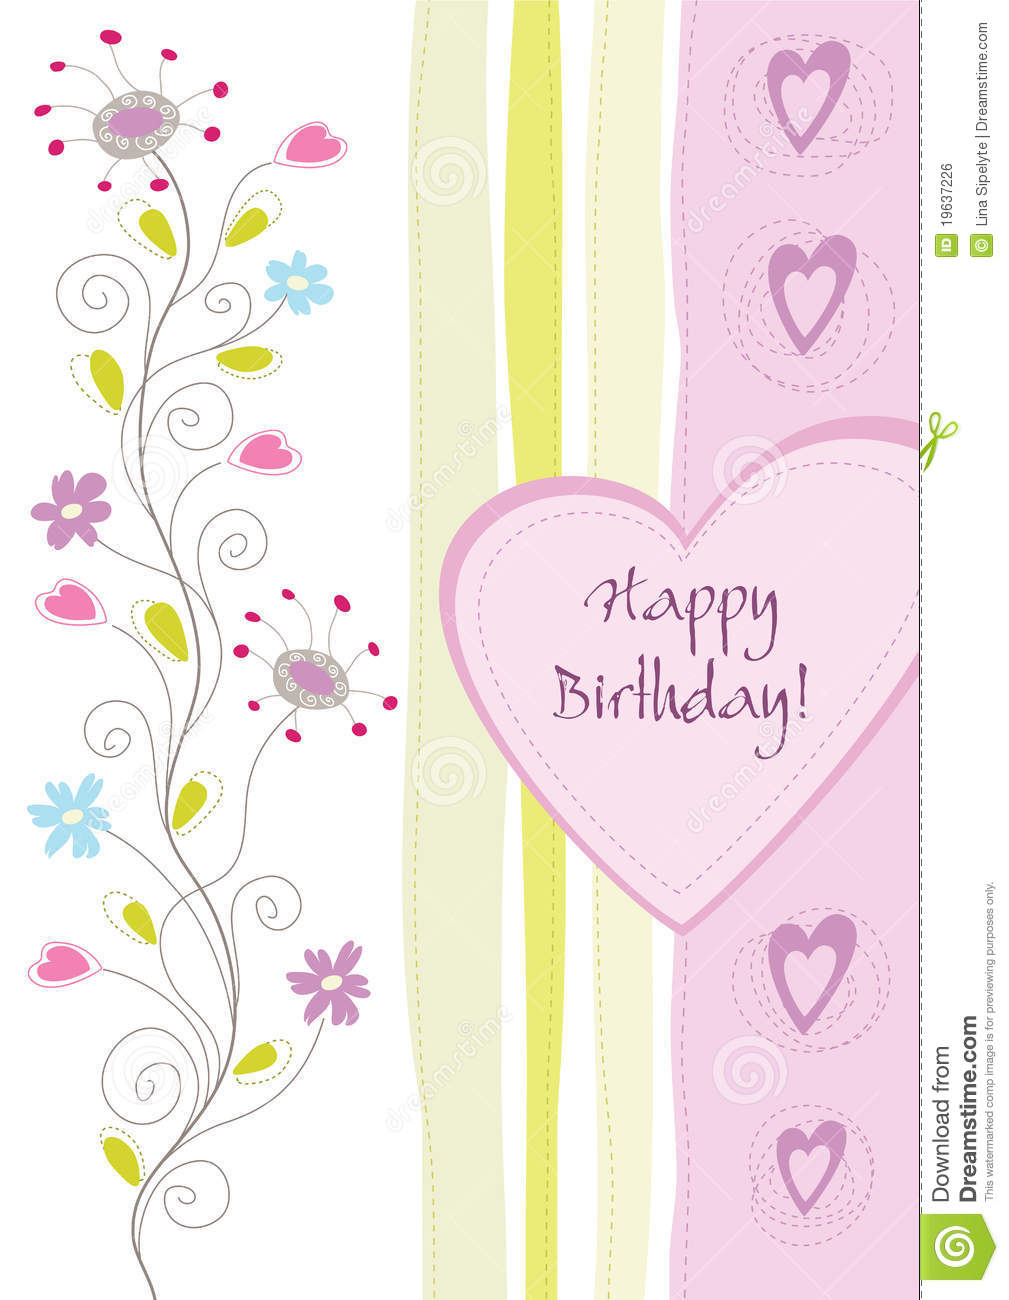 Happy birthday floral greeting card. This image is an illustration.